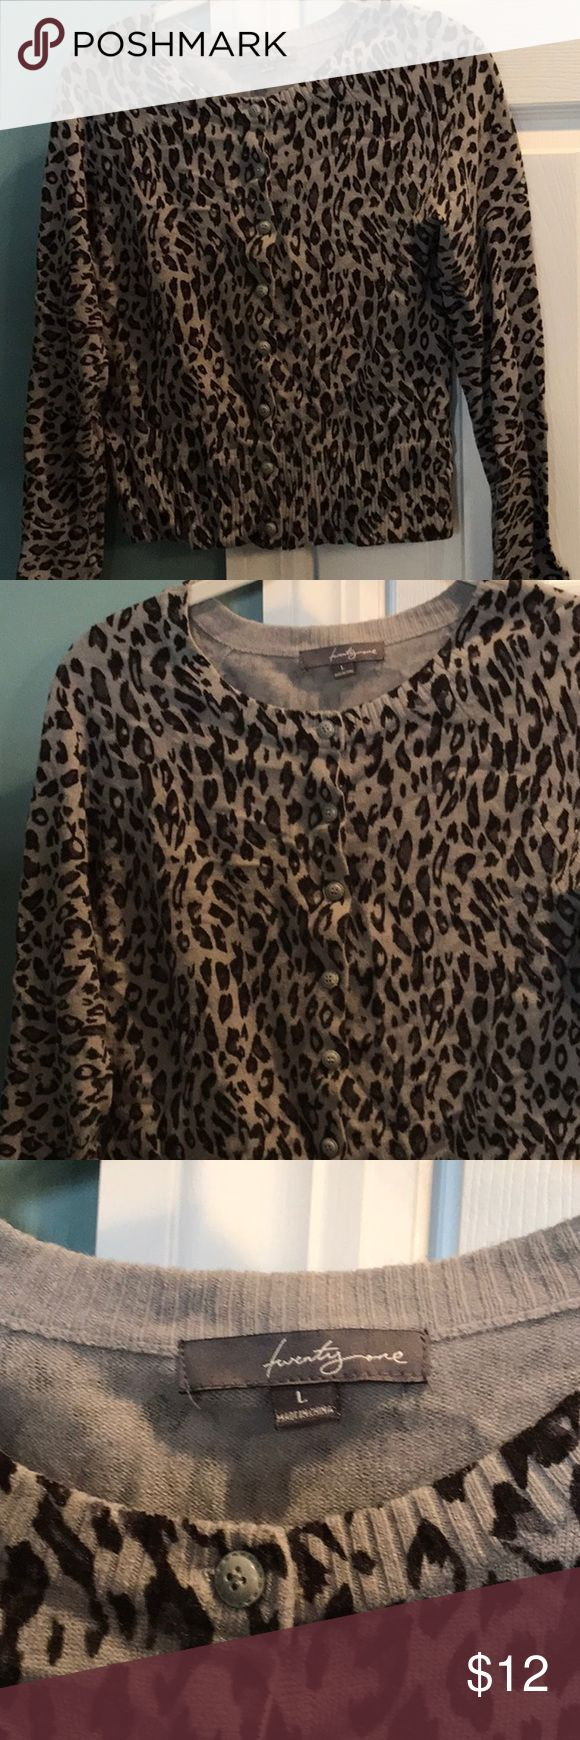 Leopard print cardigan sweater Leopard print button down cardigan sweater. Great condition. Size large Sweaters Cardigans